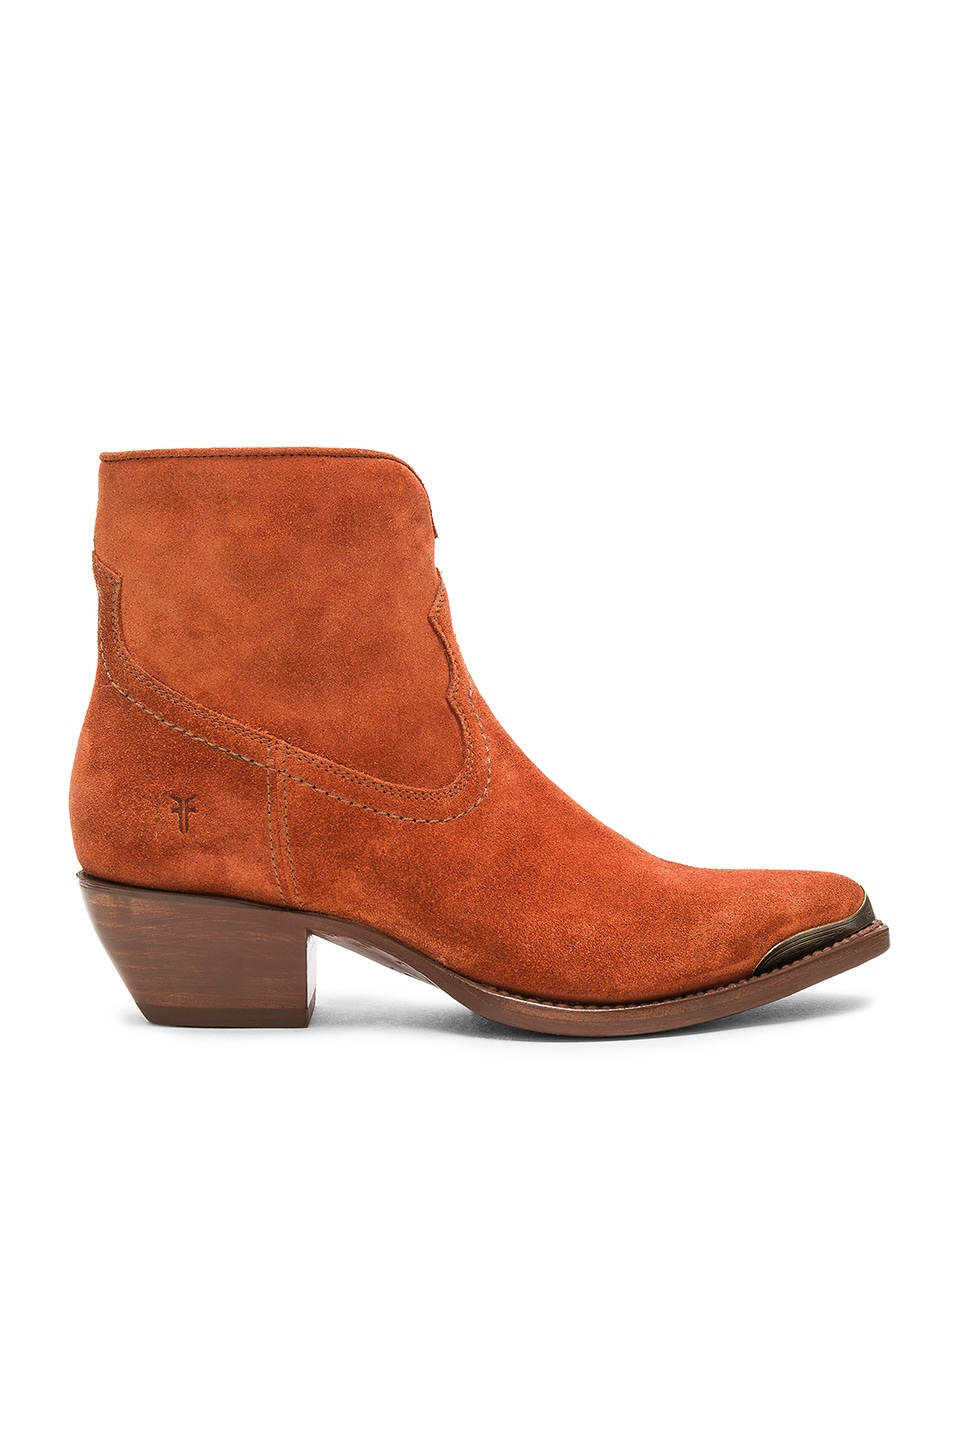 Shane Tip Bootie by Frye